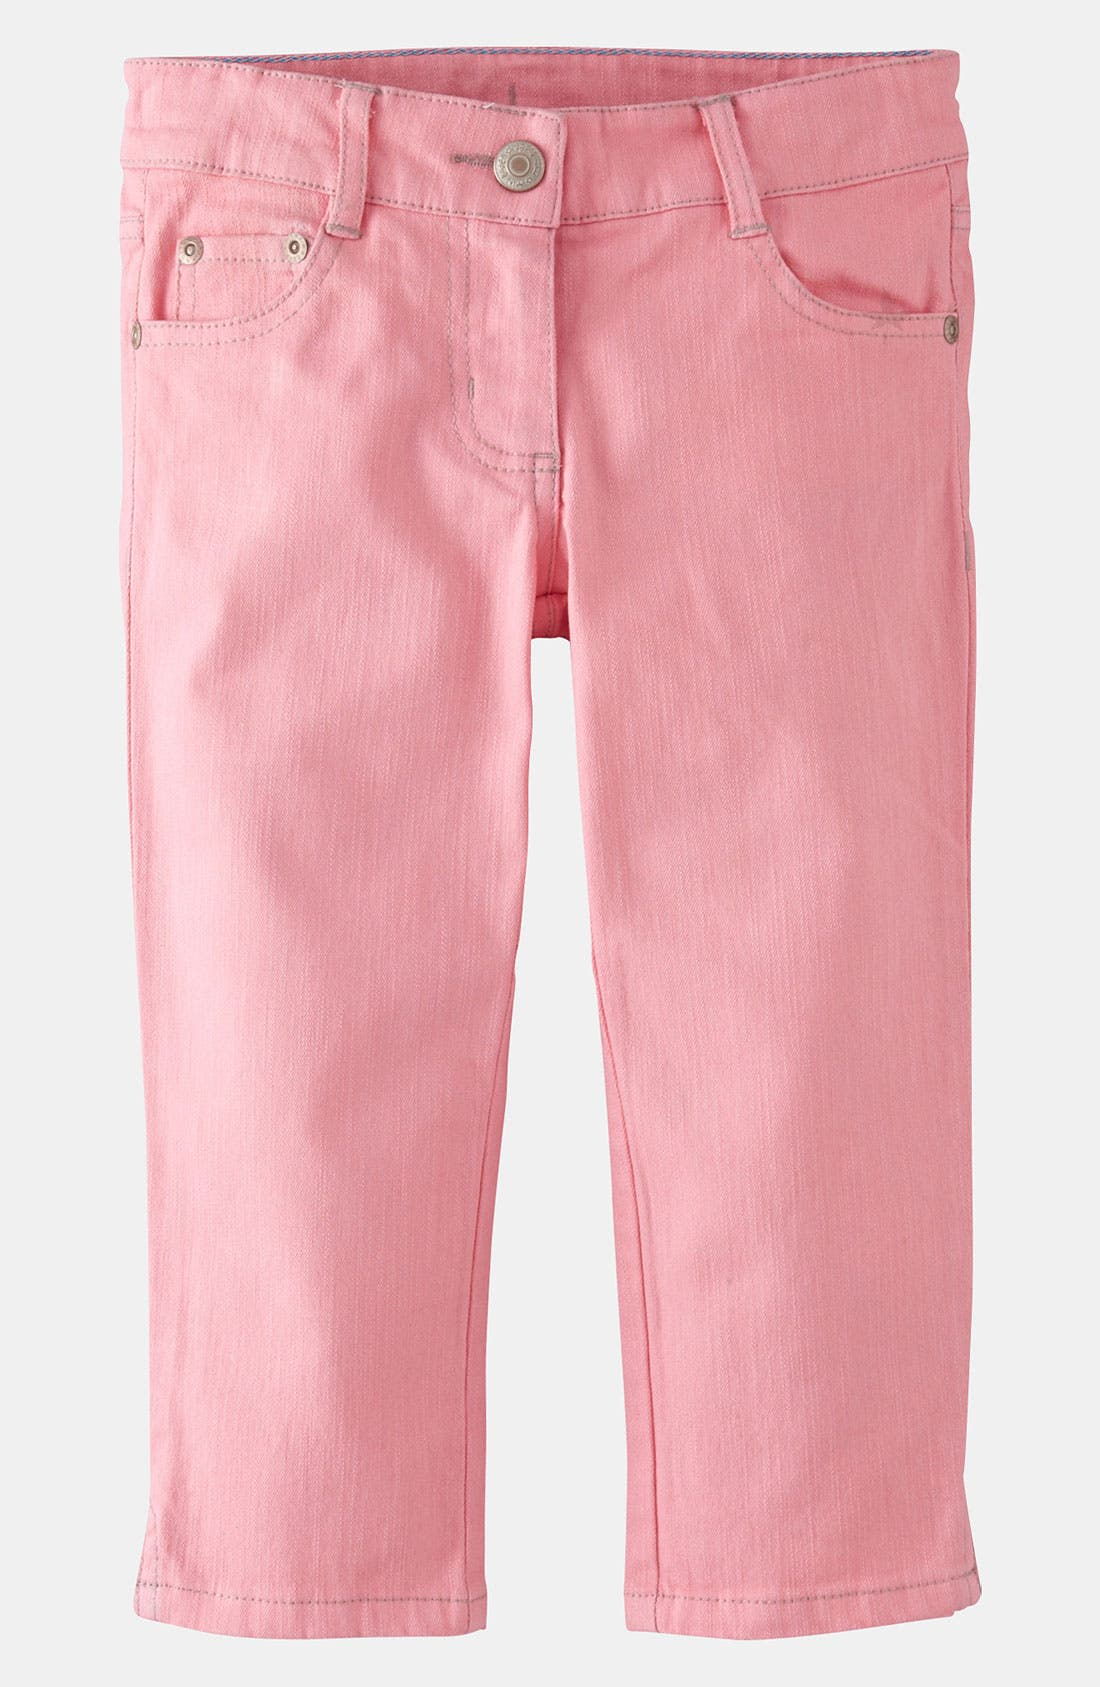 Main Image - Mini Boden Capri Pants (Little Girls & Big Girls)